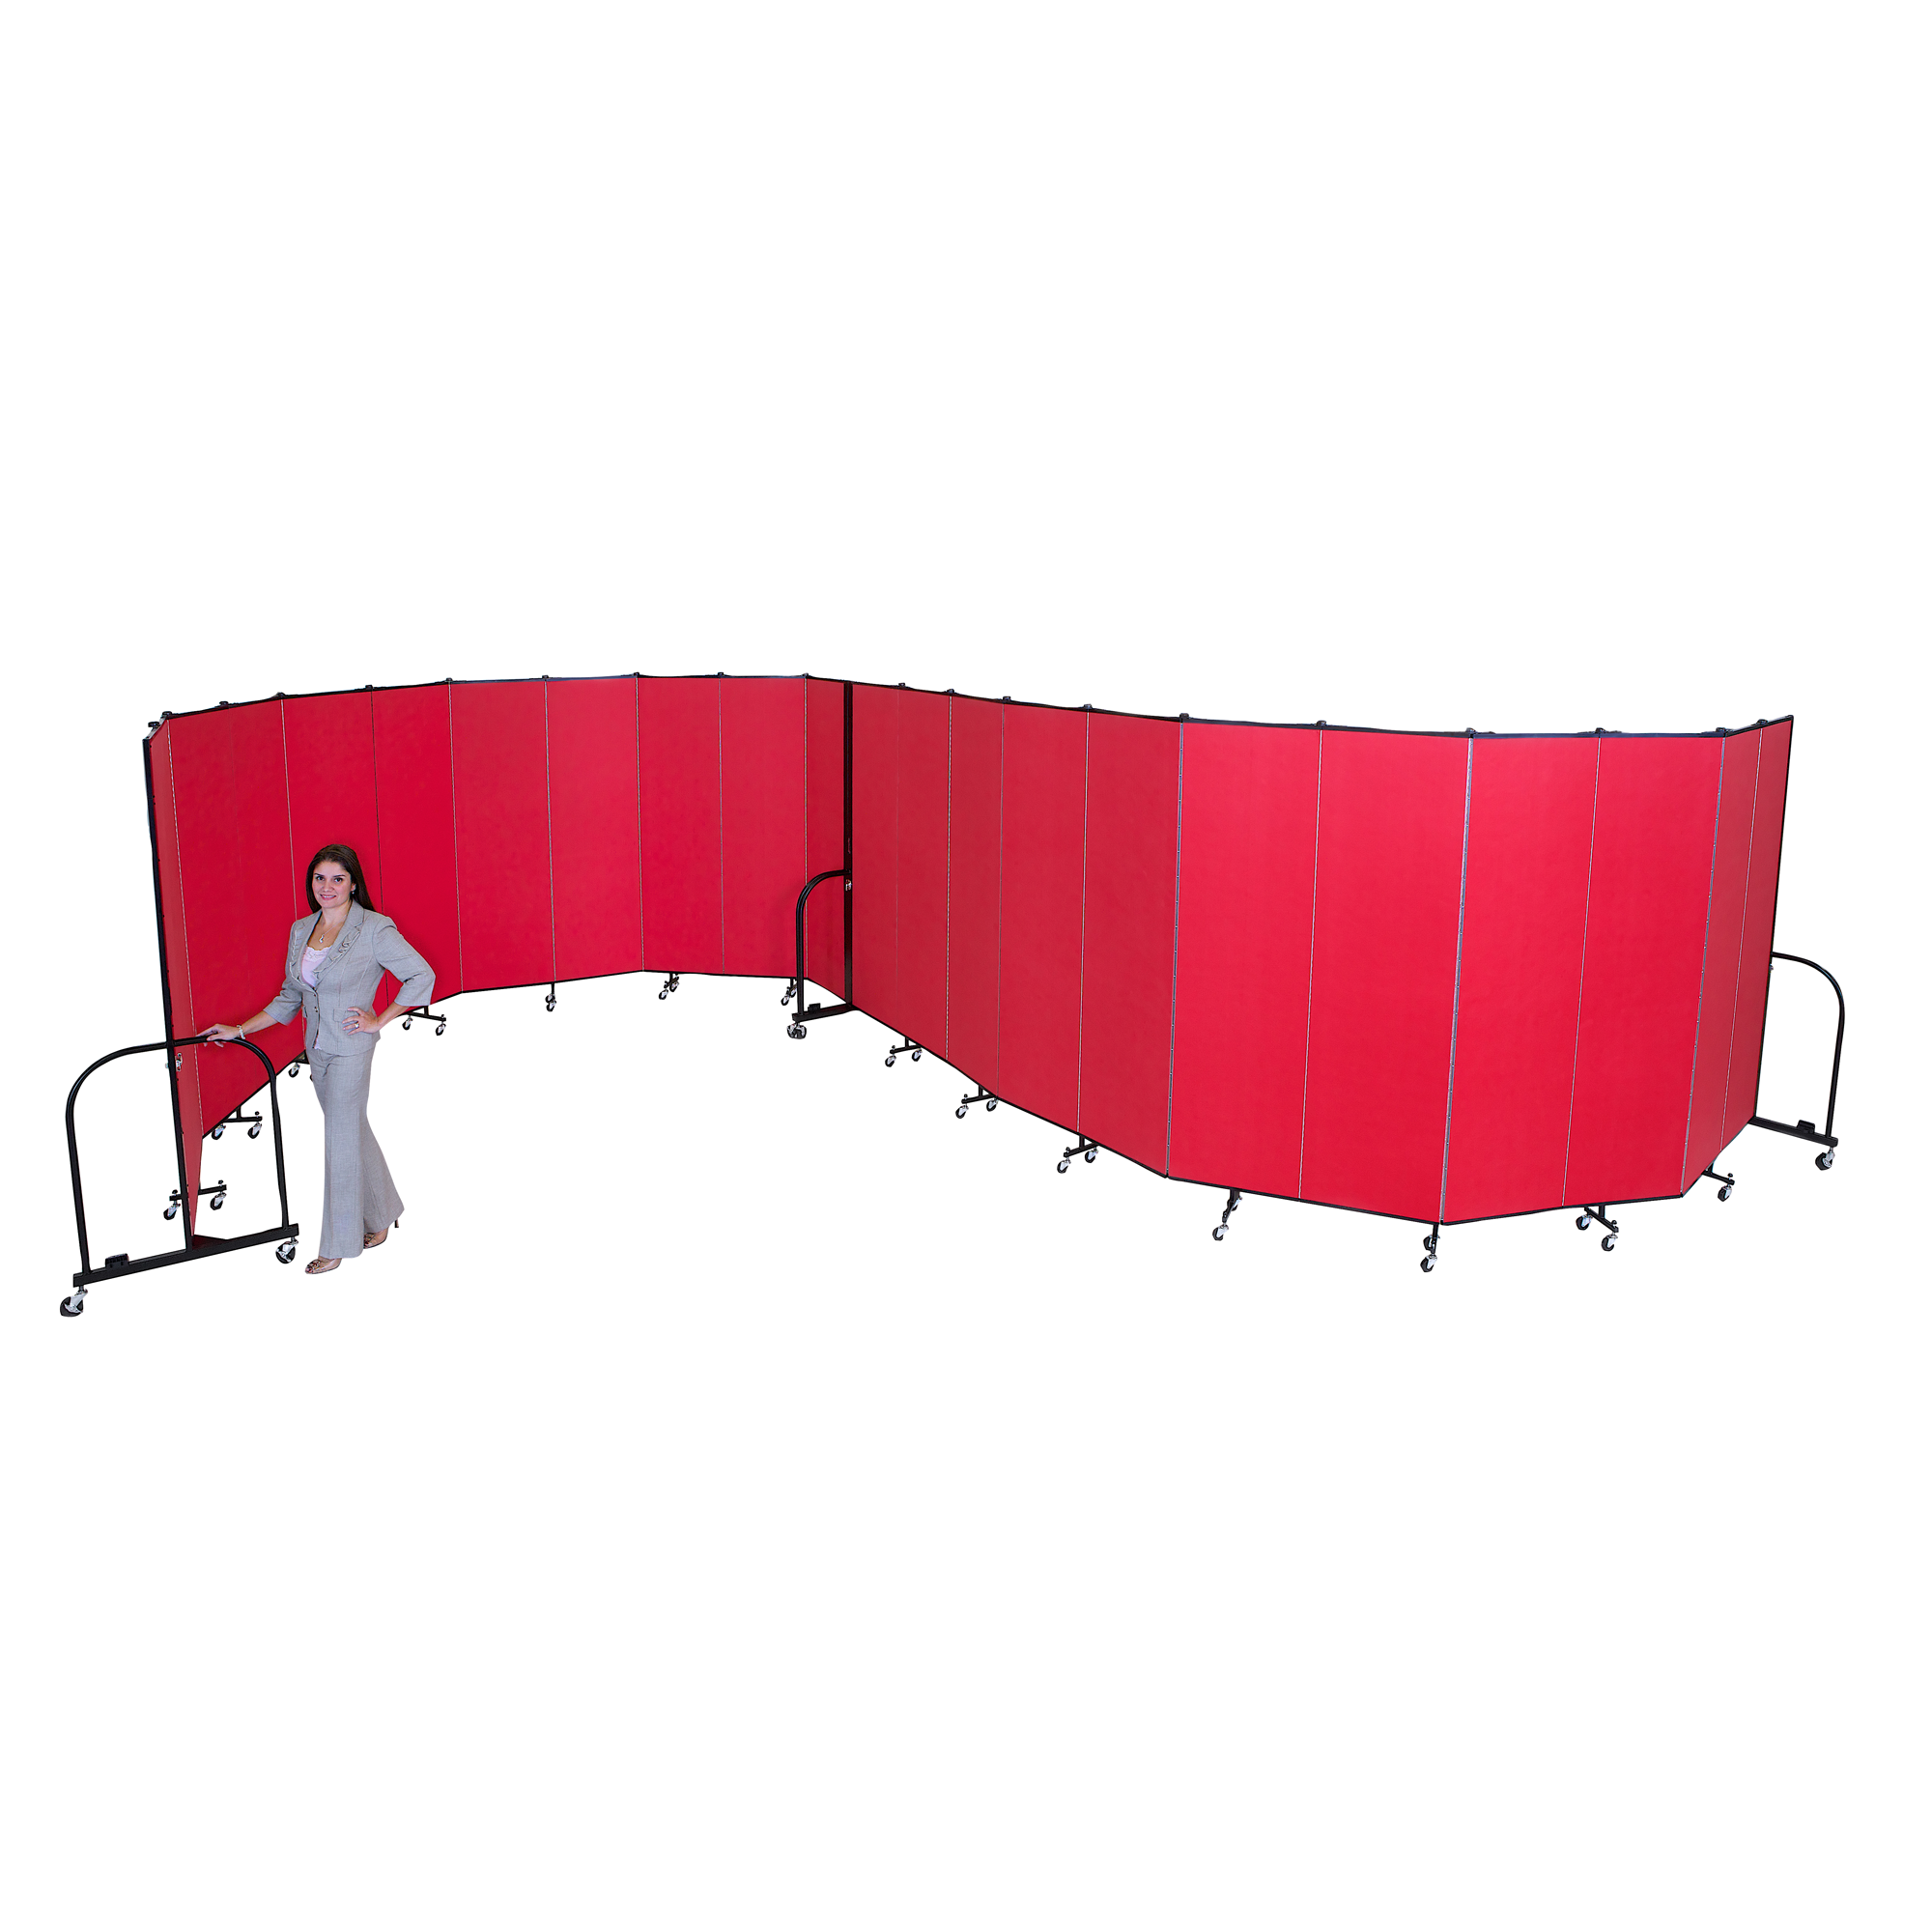 Page not found screenflex portable room iders - Curved Room Dividers Add Interest Flexibility And Dimension To Your Space